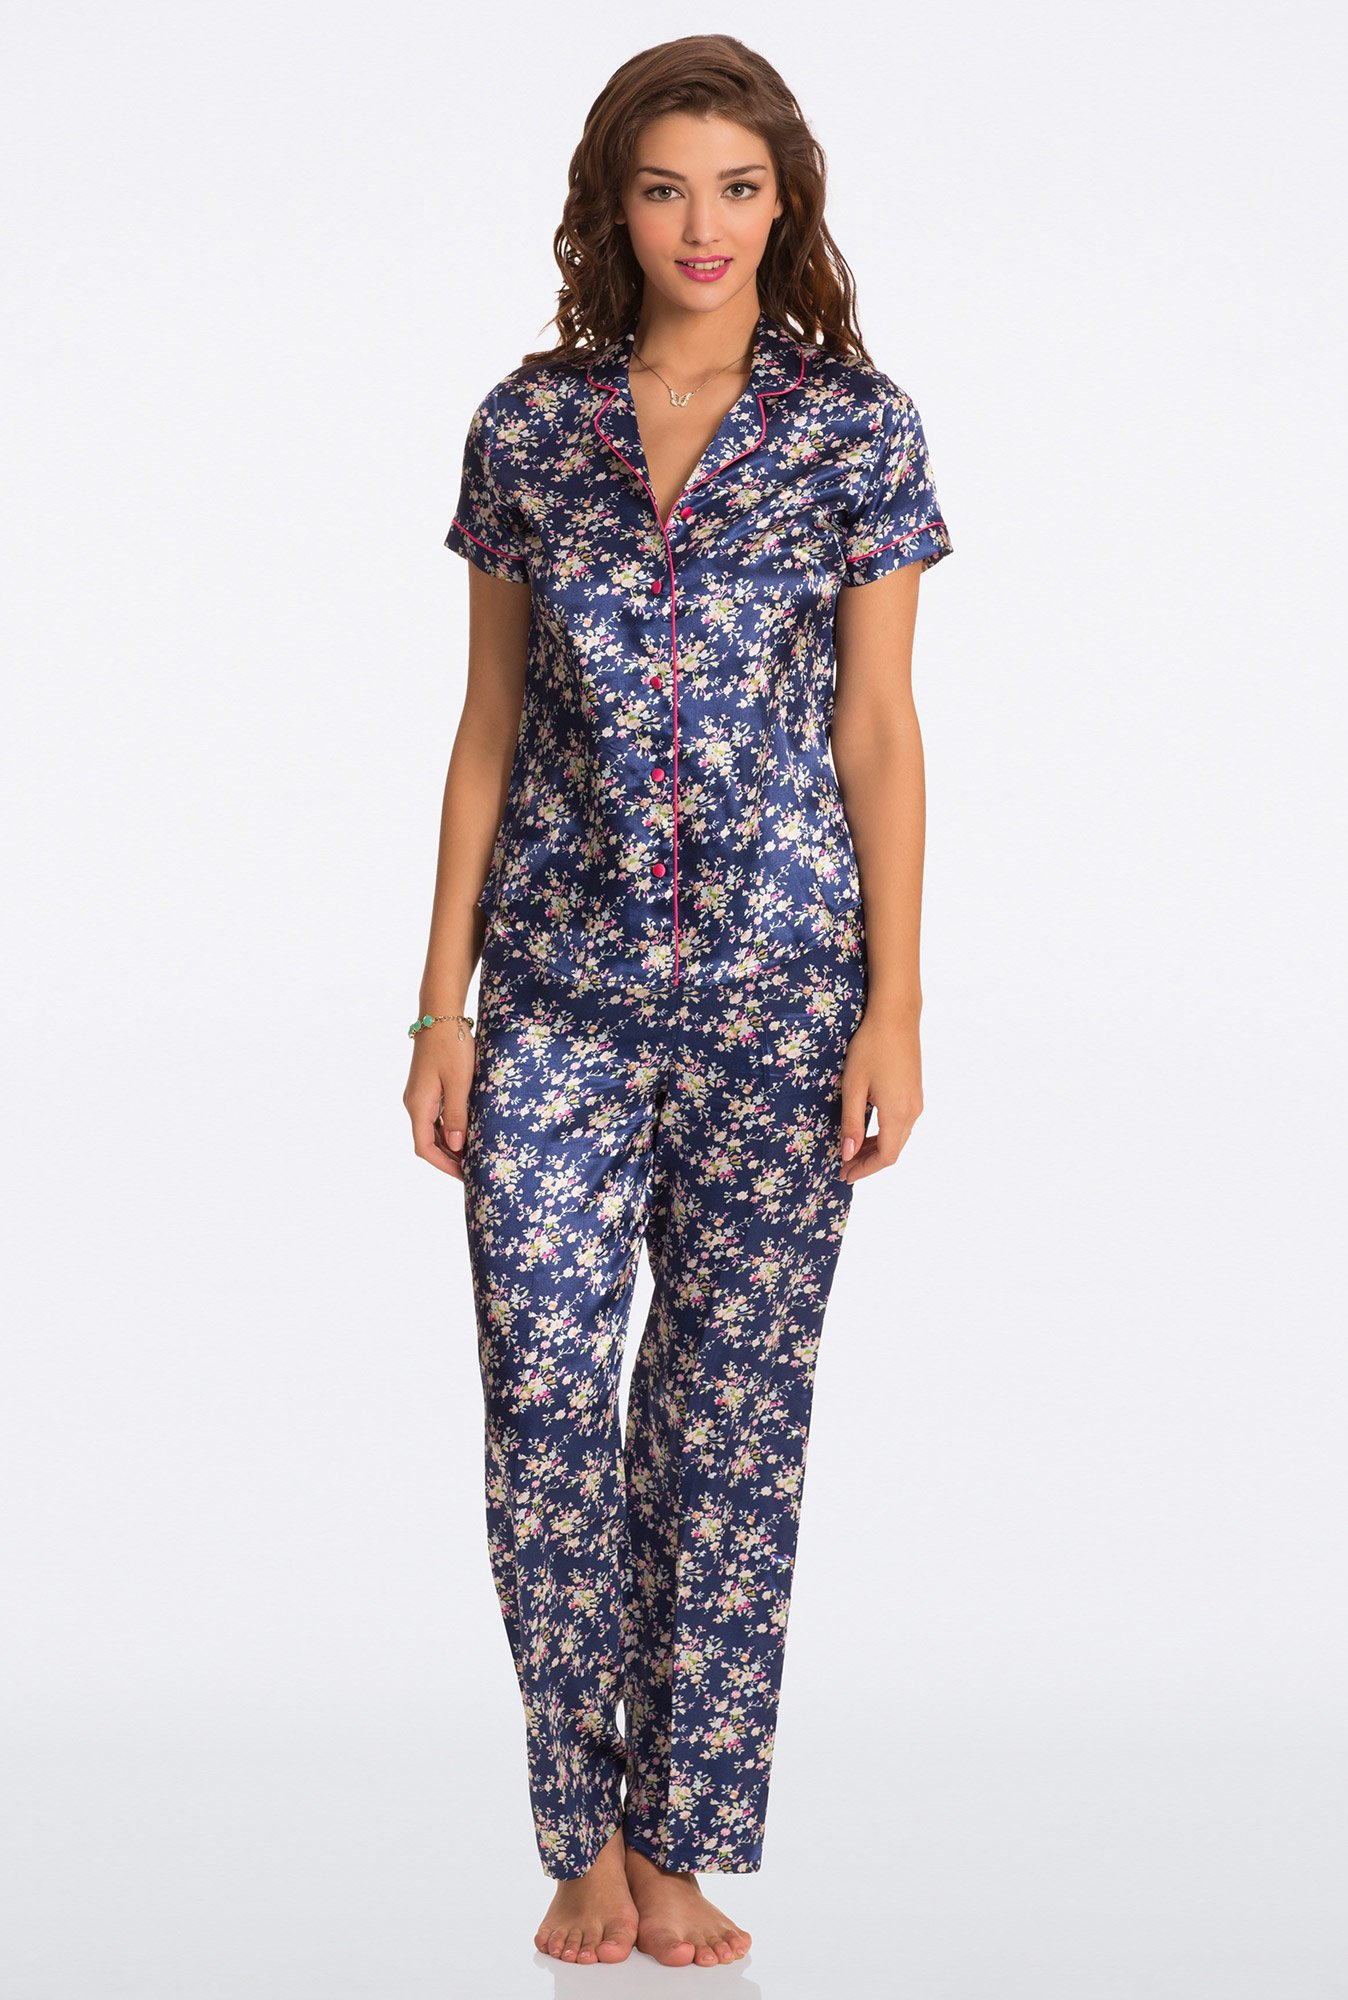 Pretty Secrets Blue Floral Print Top & Pyjama Set